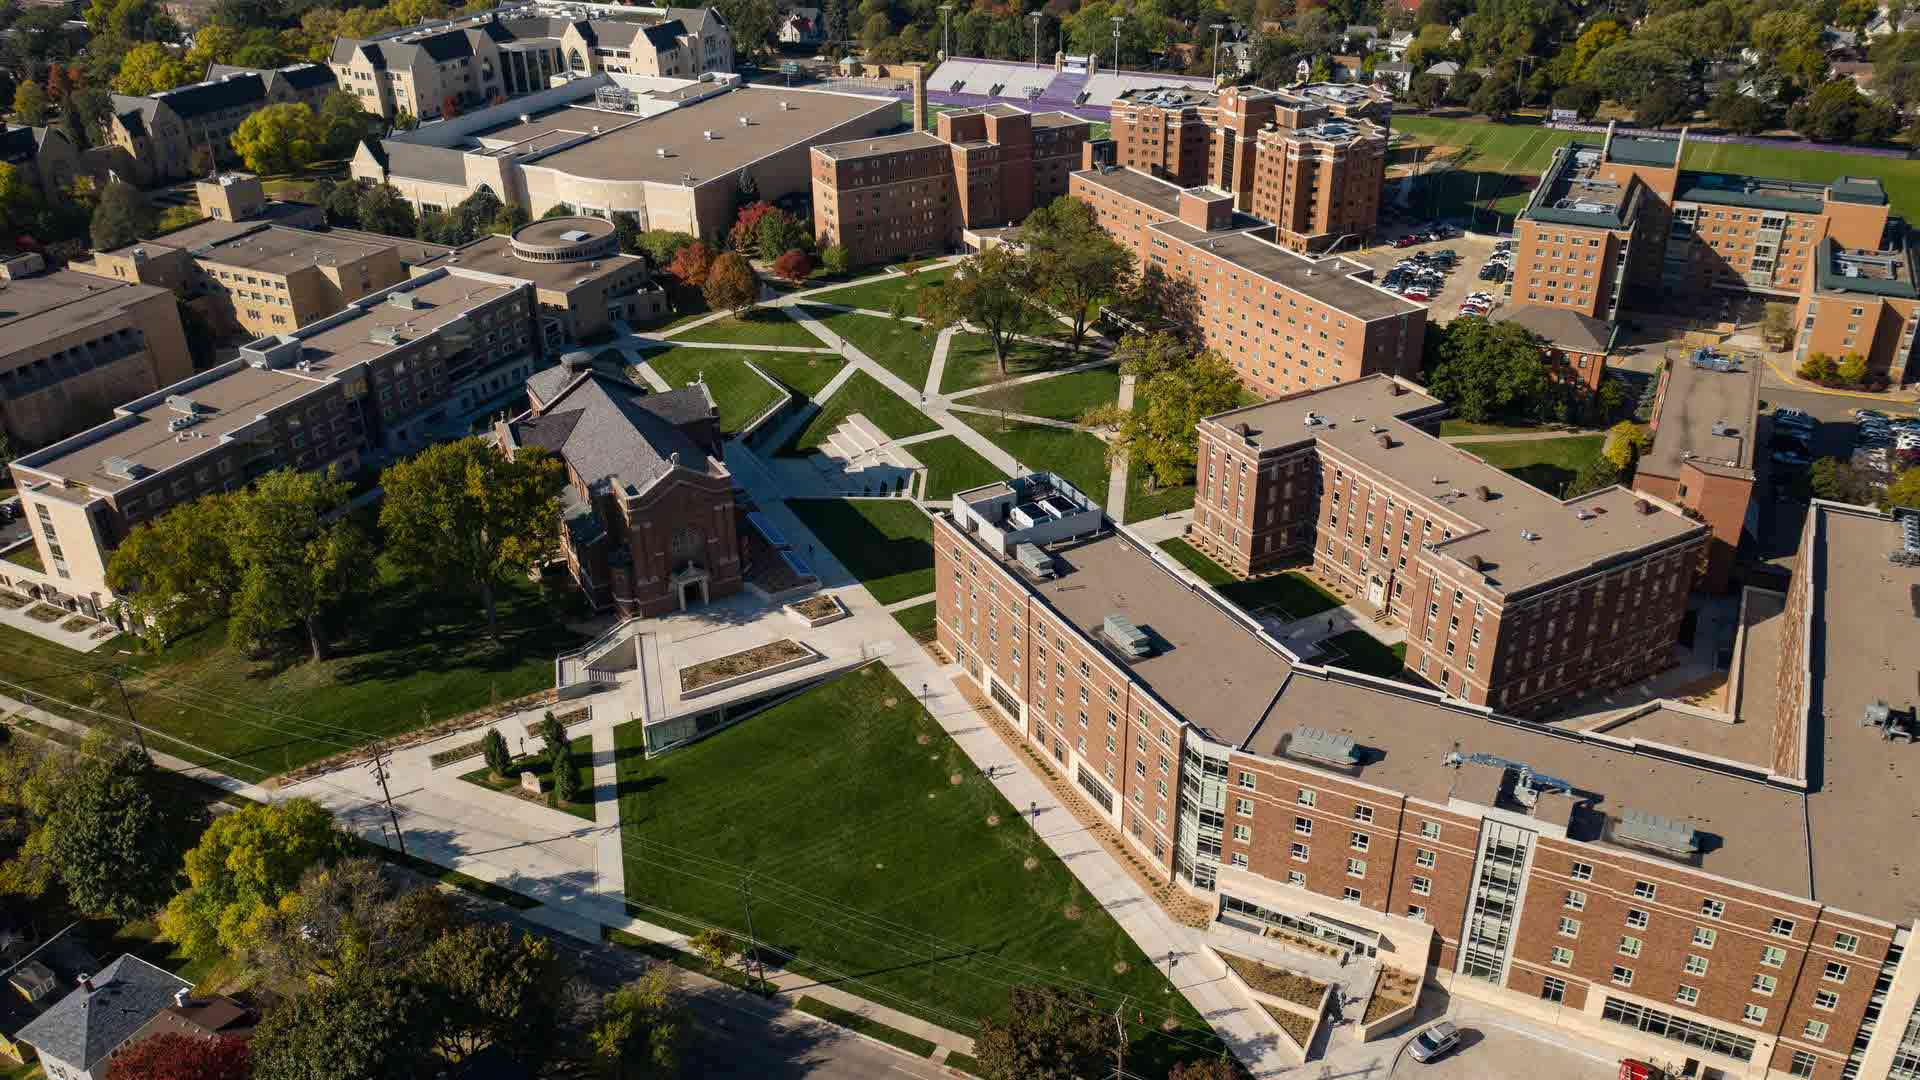 aerial view of residence hall buildings